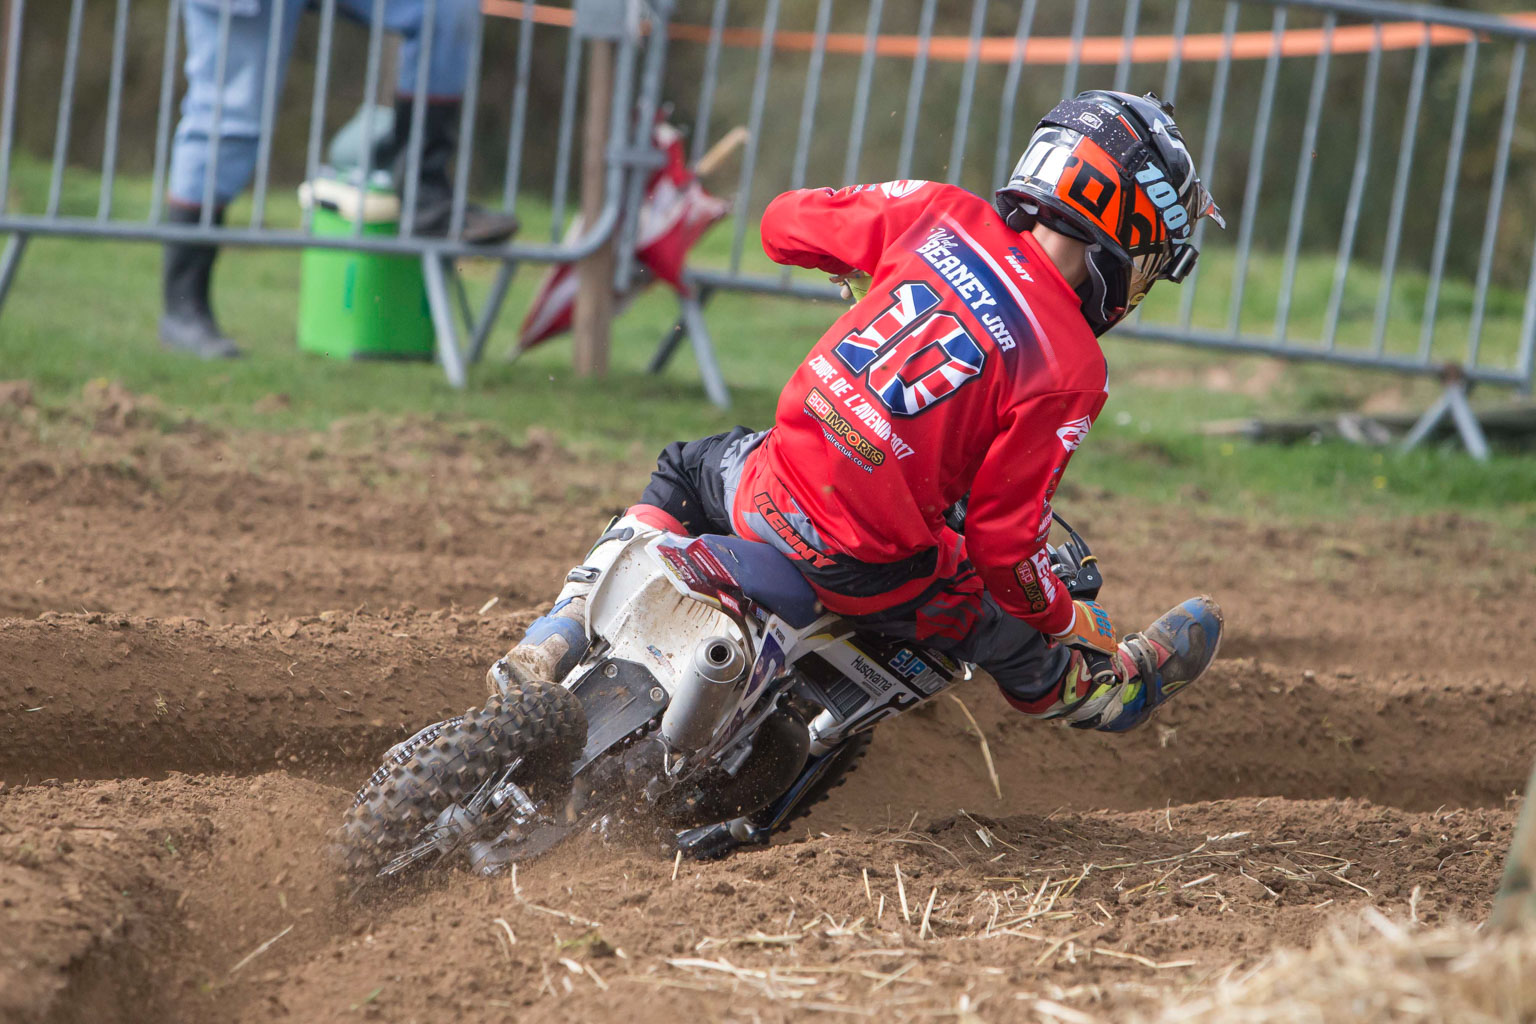 Wal Beaney (Husqvarna, GB) is the champ!